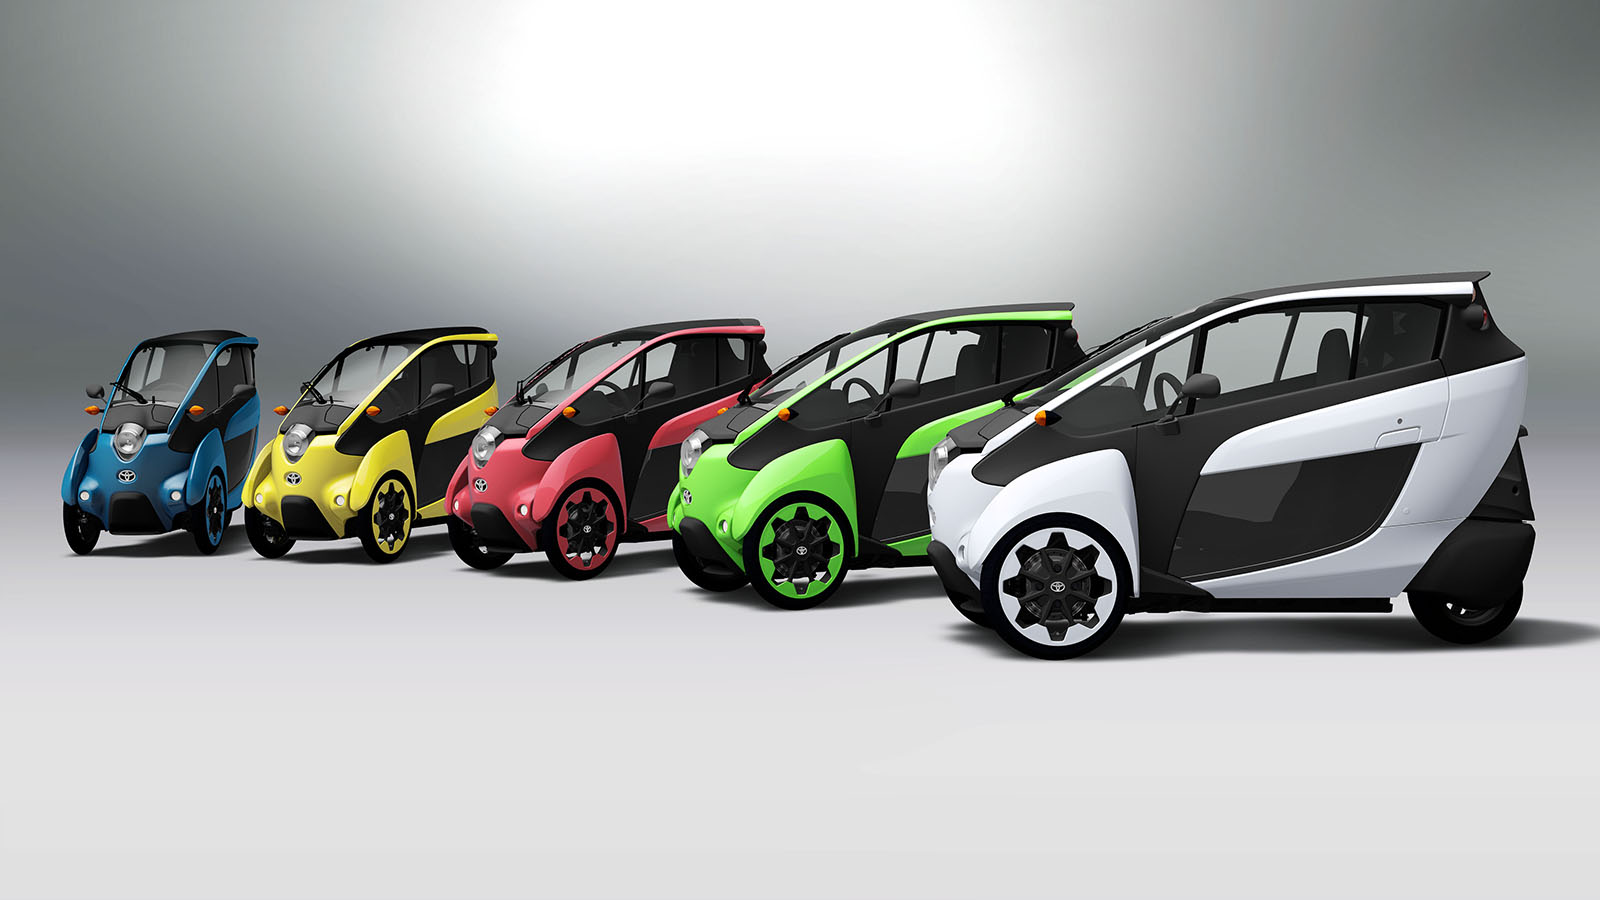 High Resolution Wallpaper | Toyota I-road 1600x900 px